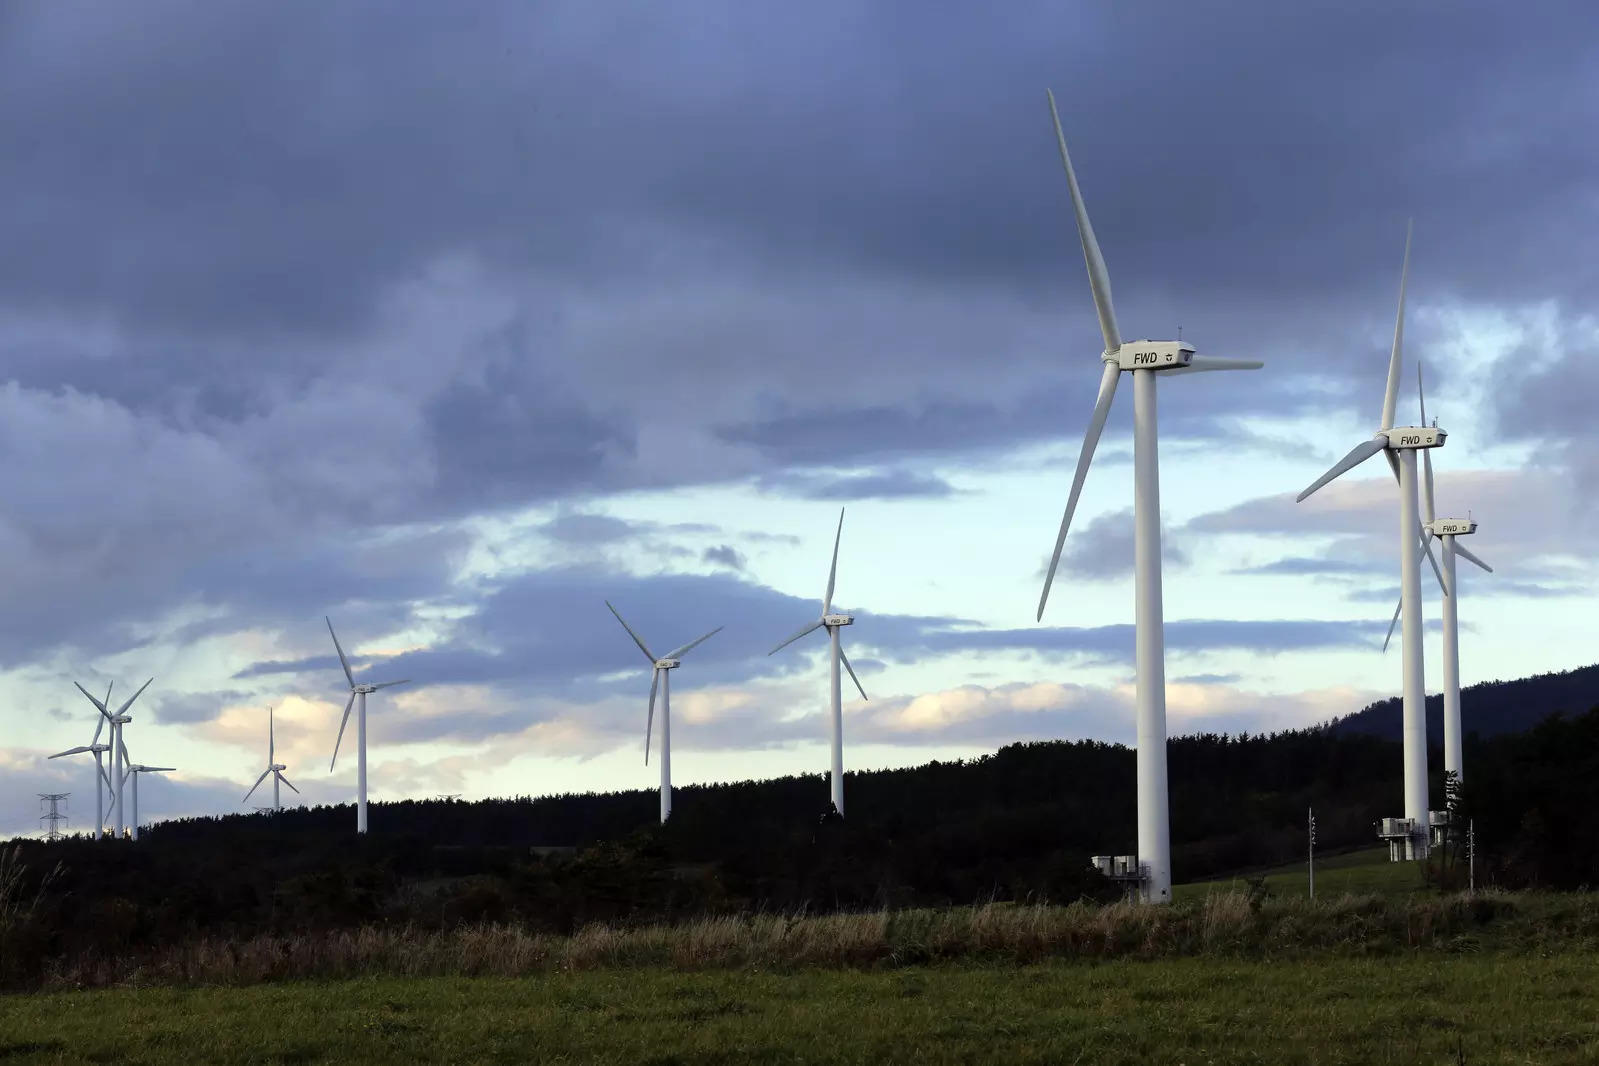 Japan aims for 36-38% of energy to come from renewables by 2030